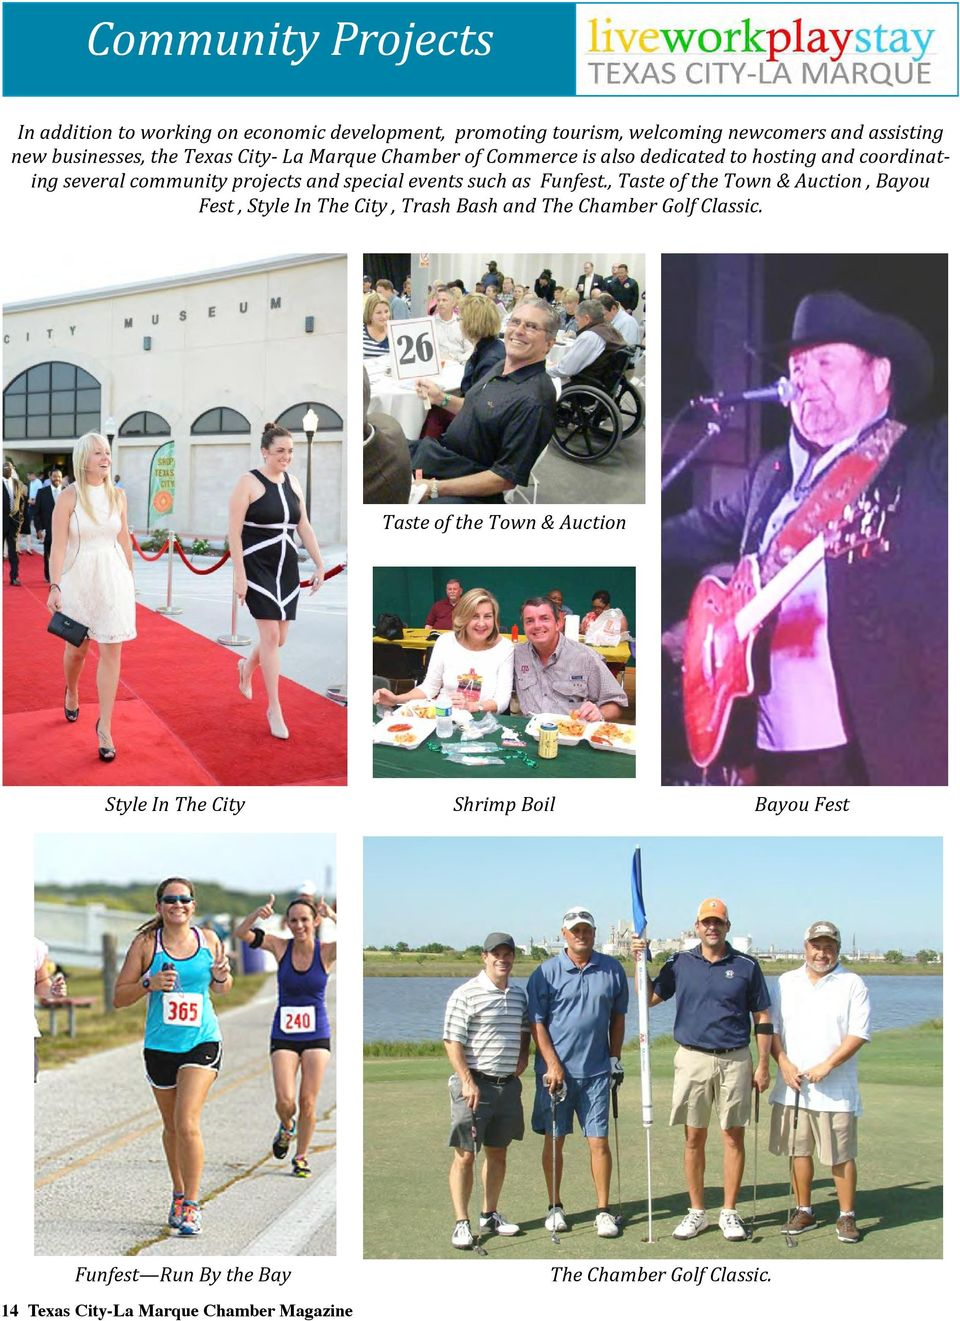 such as Funfest., Taste of the Town & Auction, Bayou Fest, Style In The City, Trash Bash and The Chamber Golf Classic.